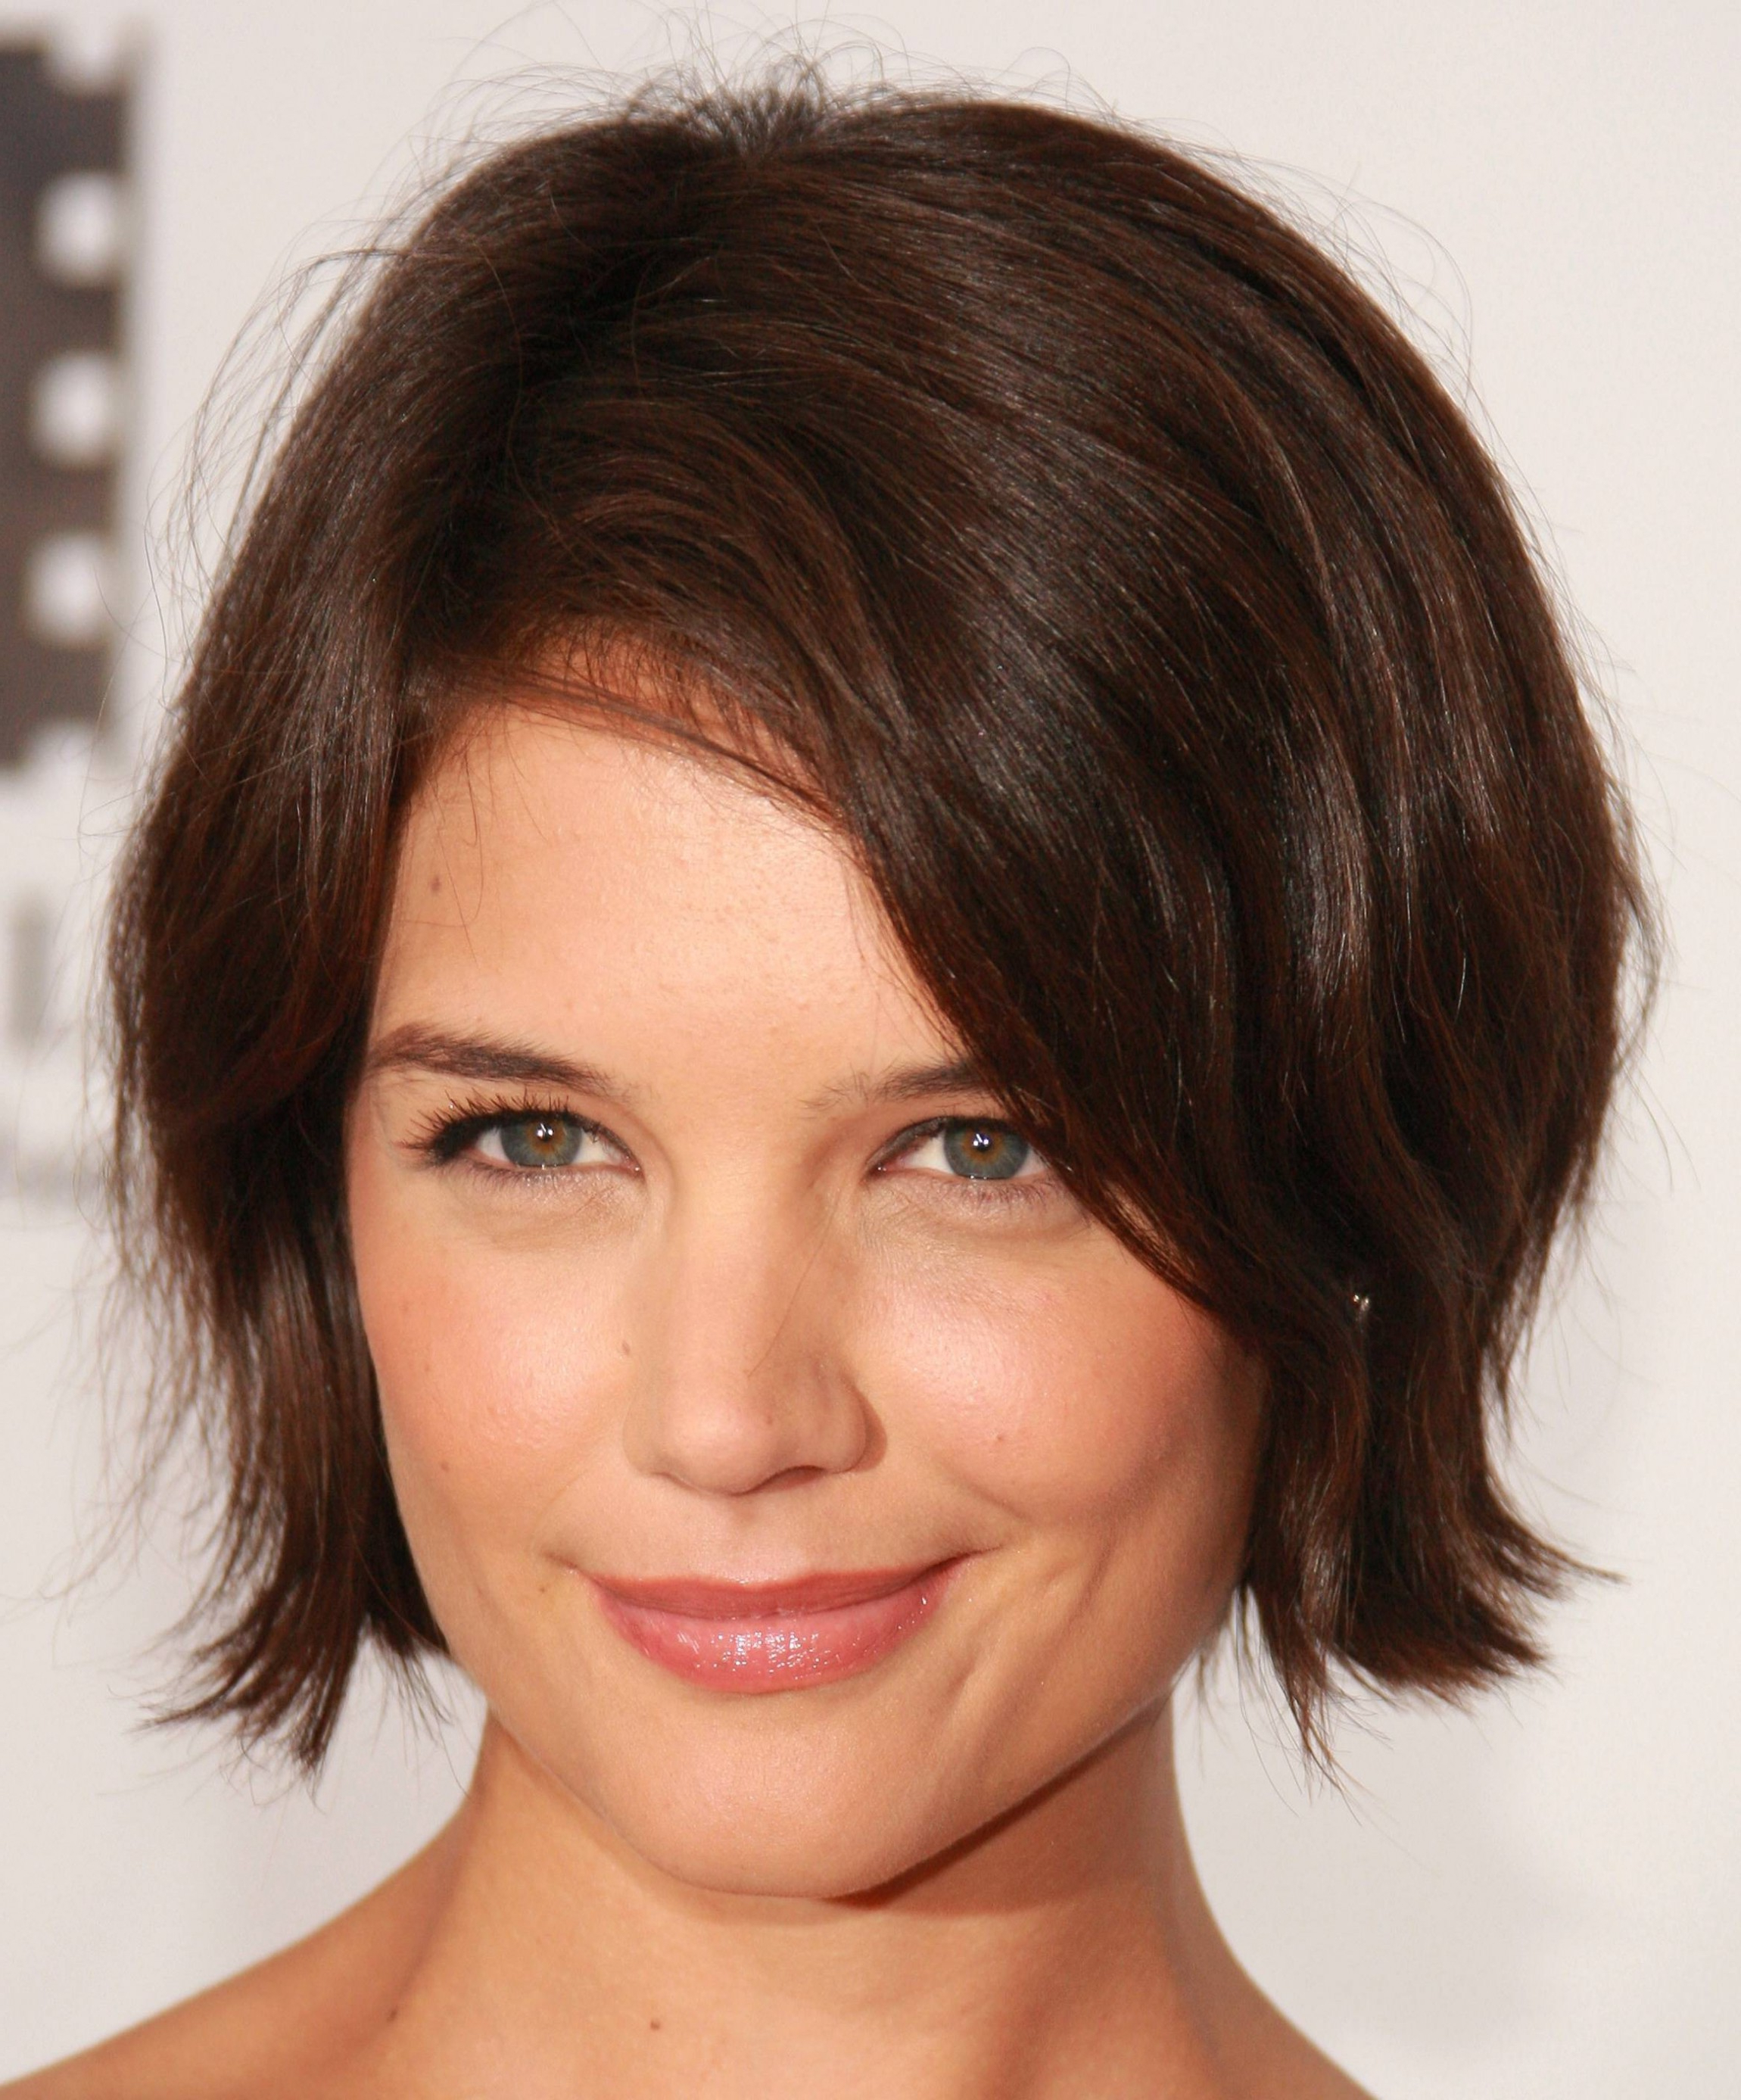 Best Short Hairstyles – Cute Hair Cut Guide For Round Face Shape In Medium Short Hairstyles For Round Faces (View 4 of 25)